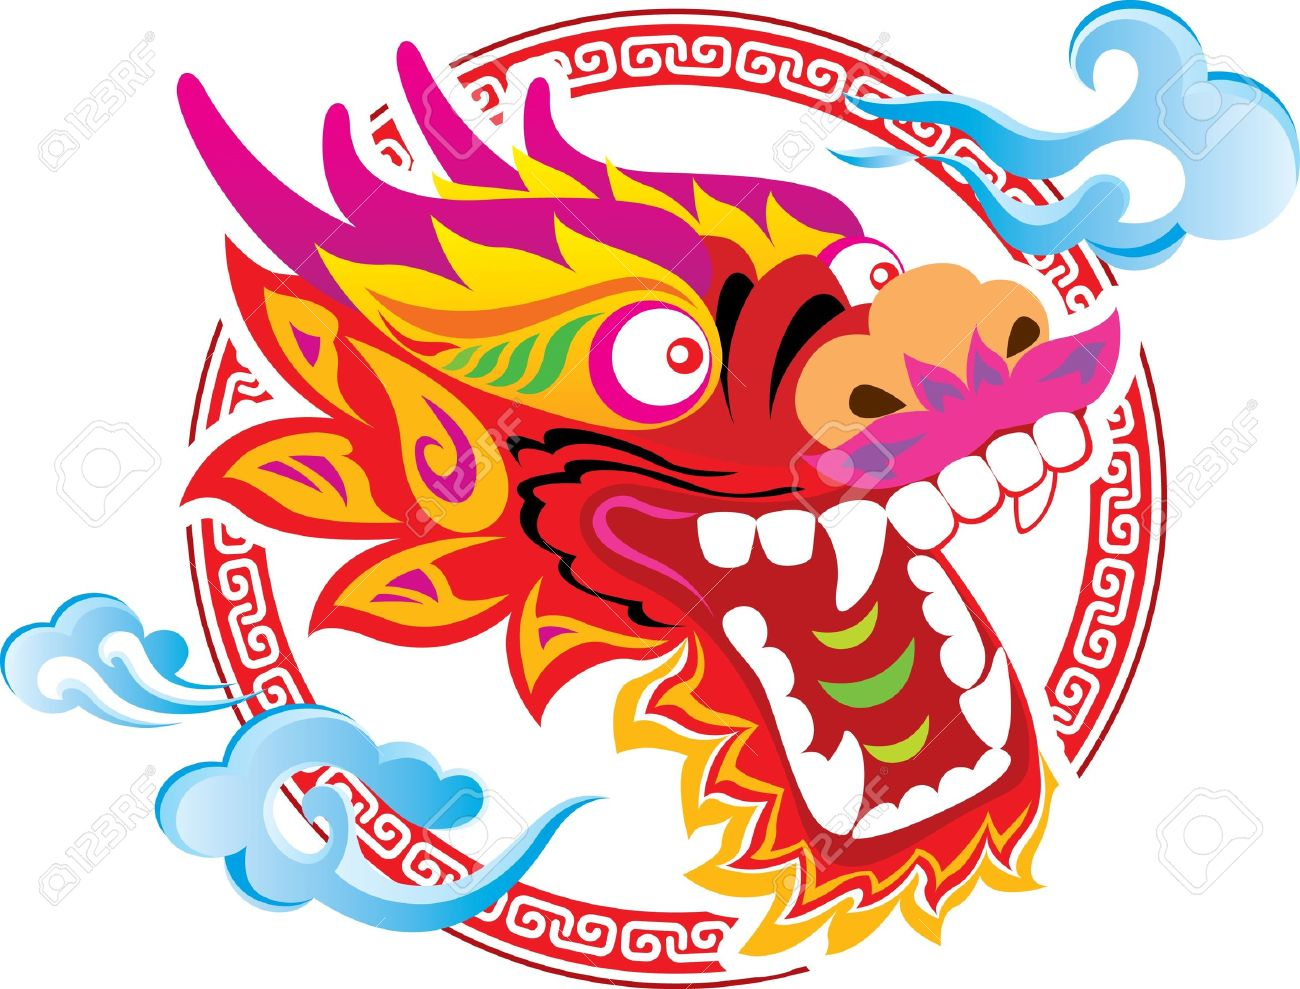 Costume clipart chinese dragon #3